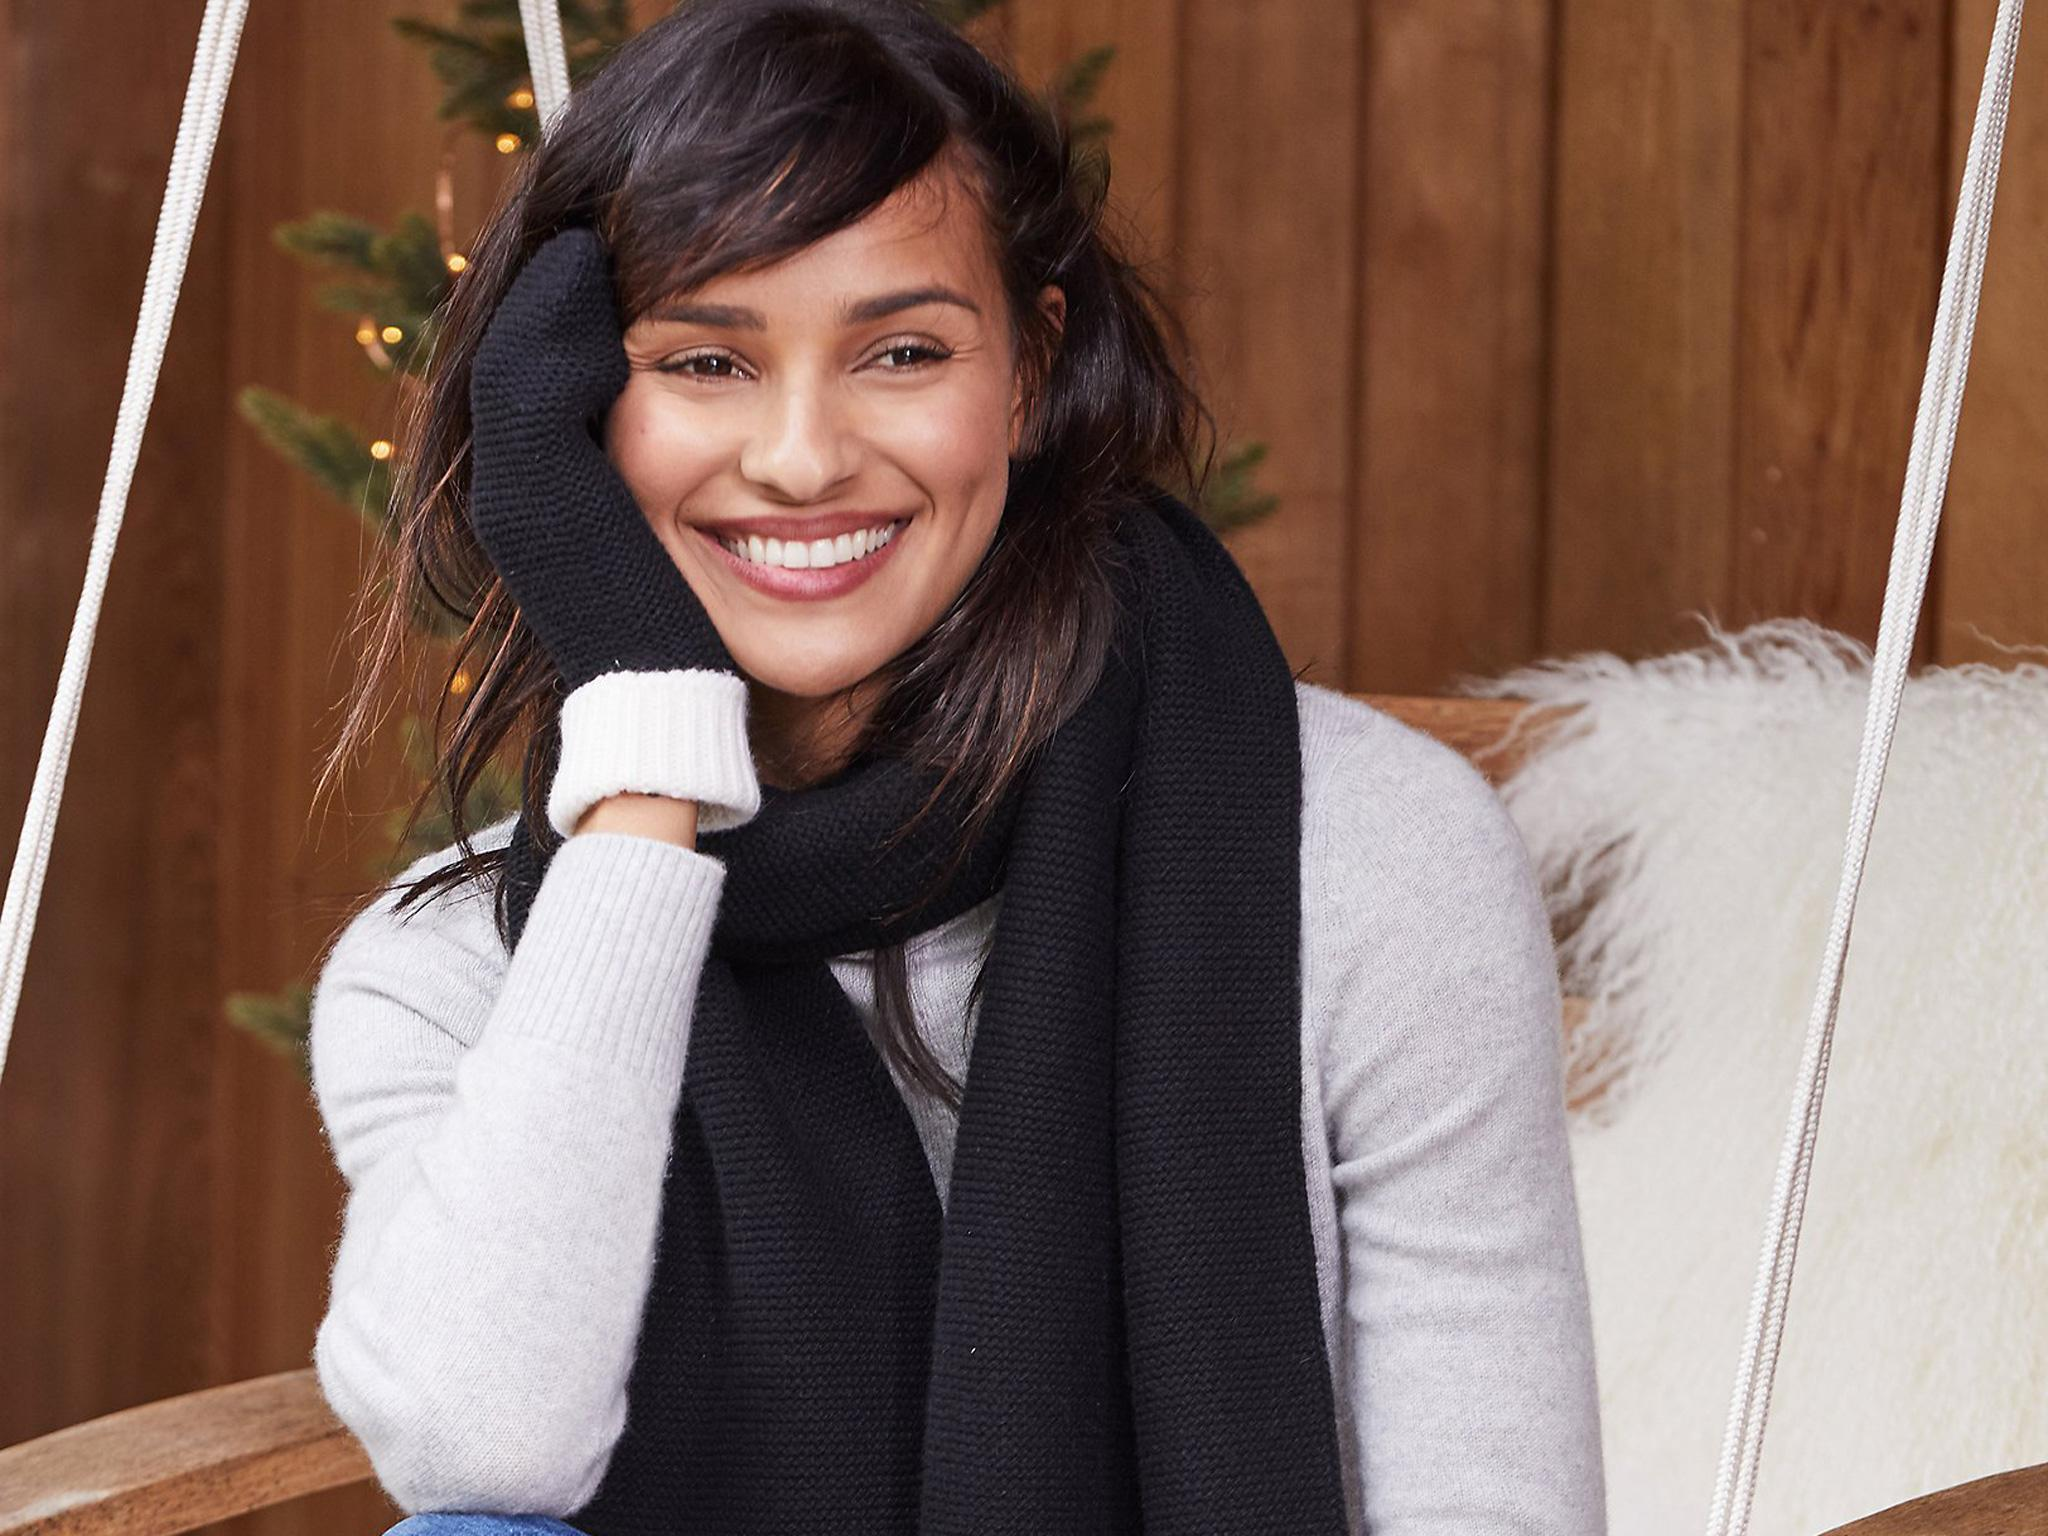 16 Best Gifts For Her